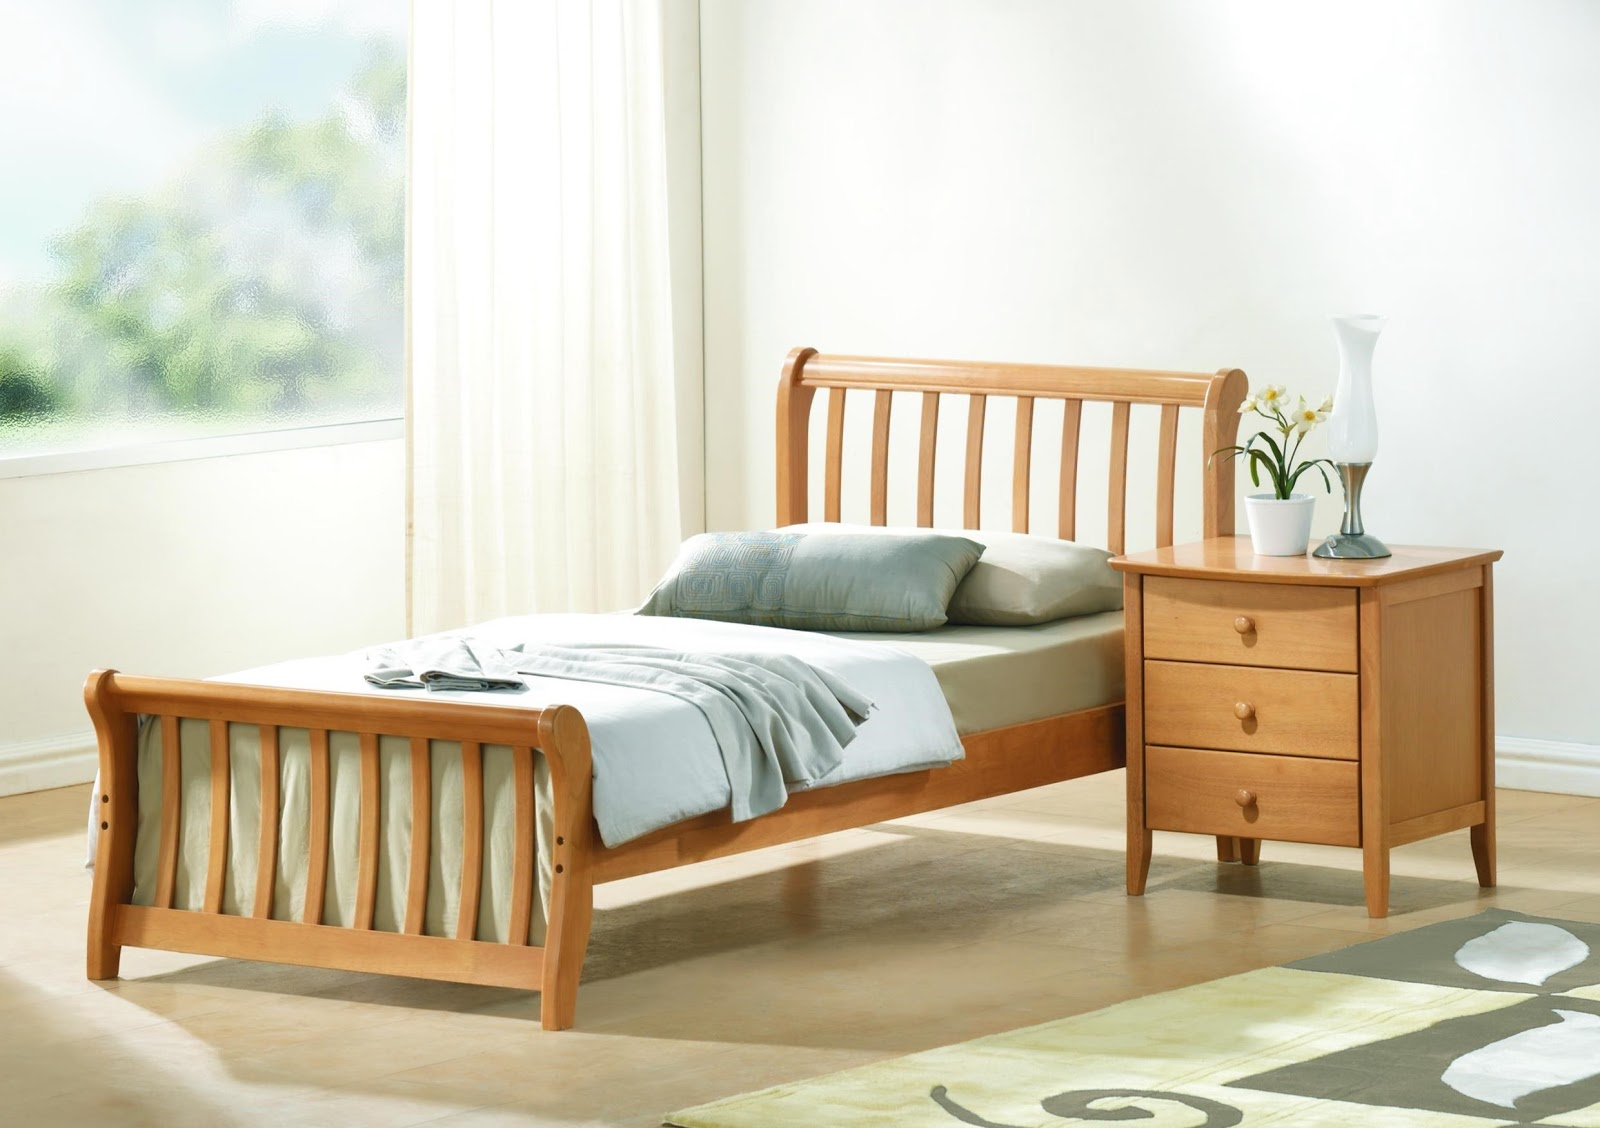 Wooden Singe Bed Design